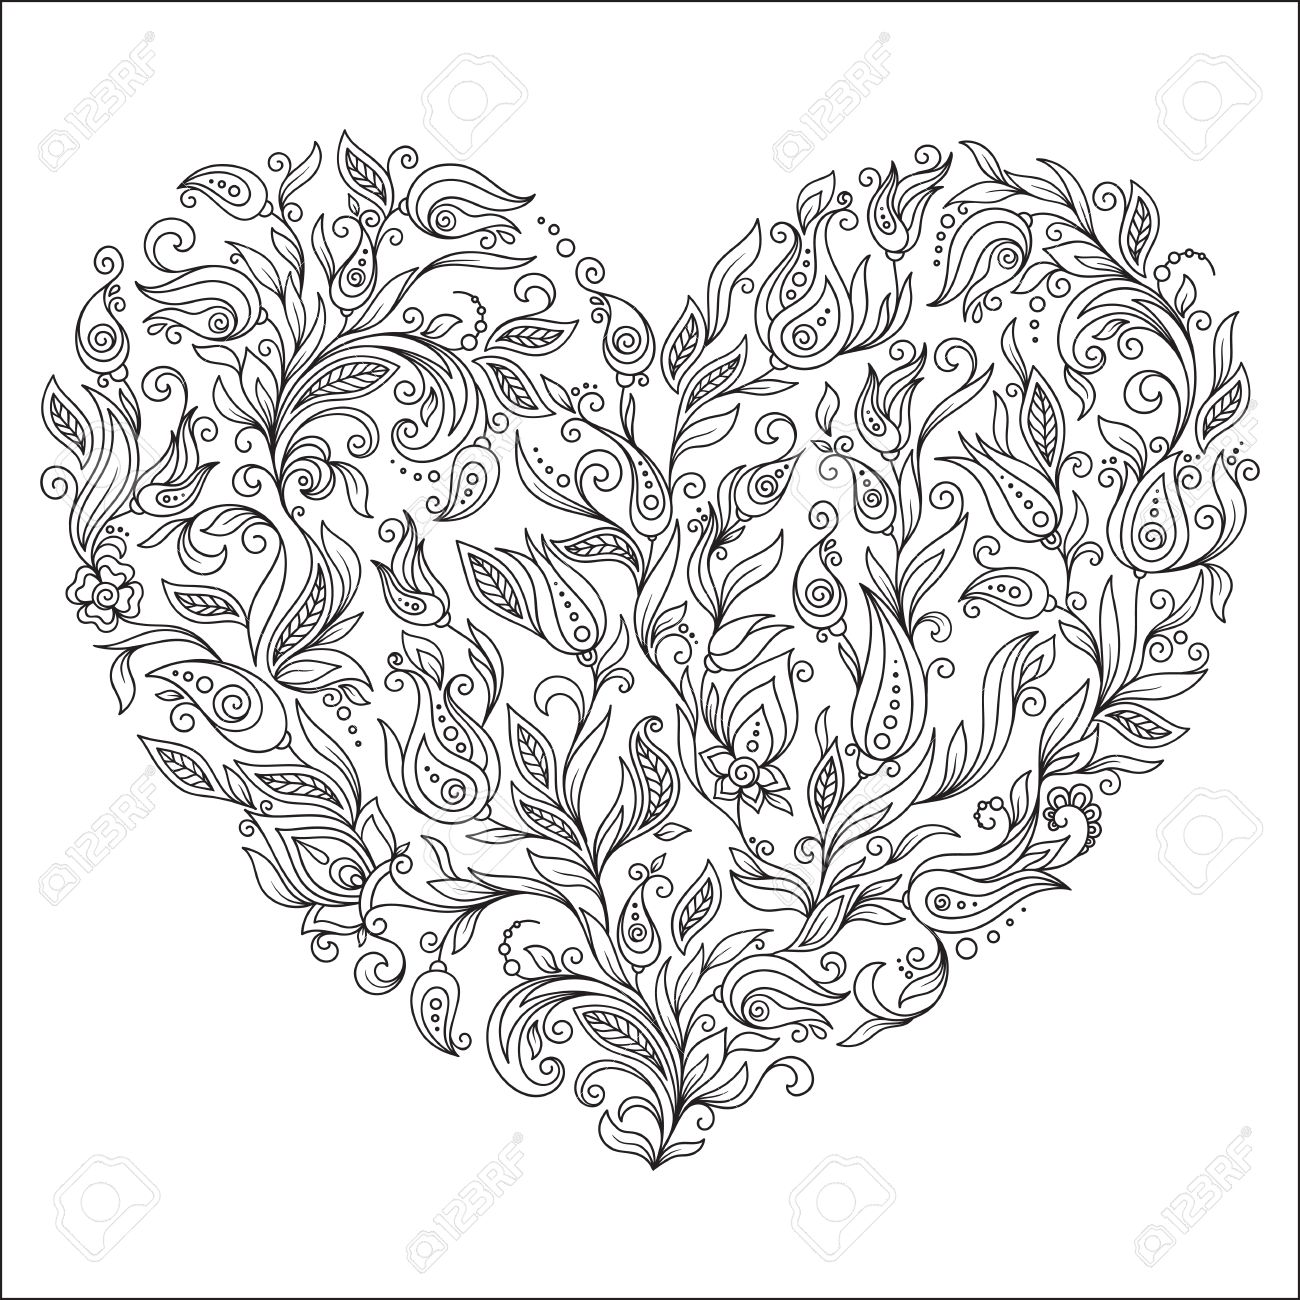 Heart flower coloring pages - Coloring Page Flower Heart St Valentine S Day Greeting Card Hand Made Print Digital Art Coloring